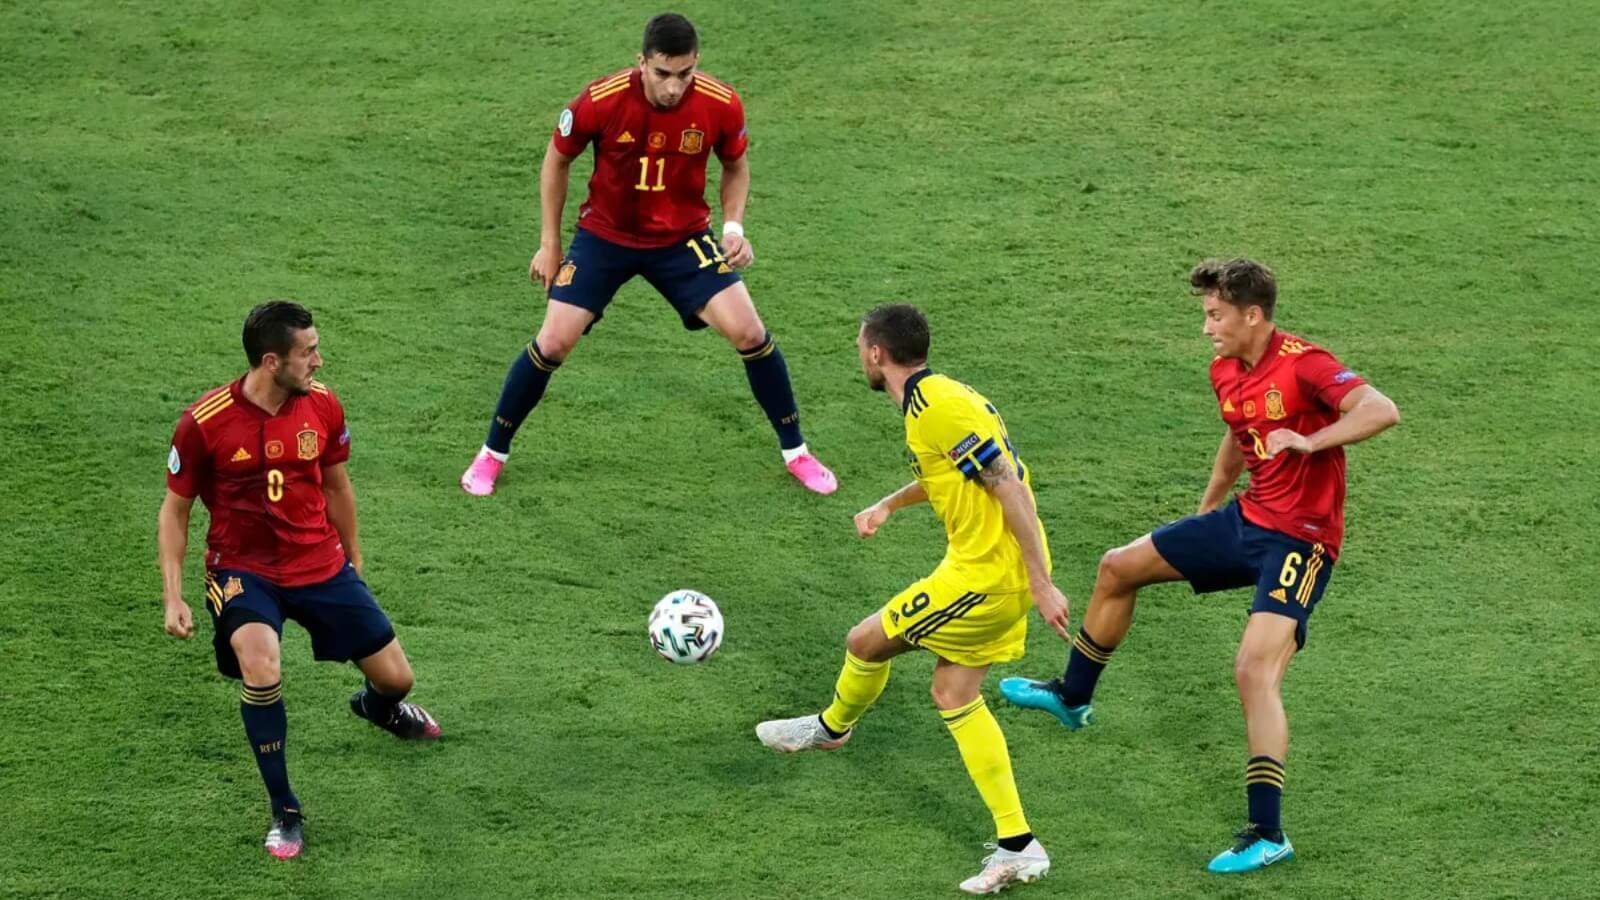 Euro 2020: Spain and Sweden played a goalless draw